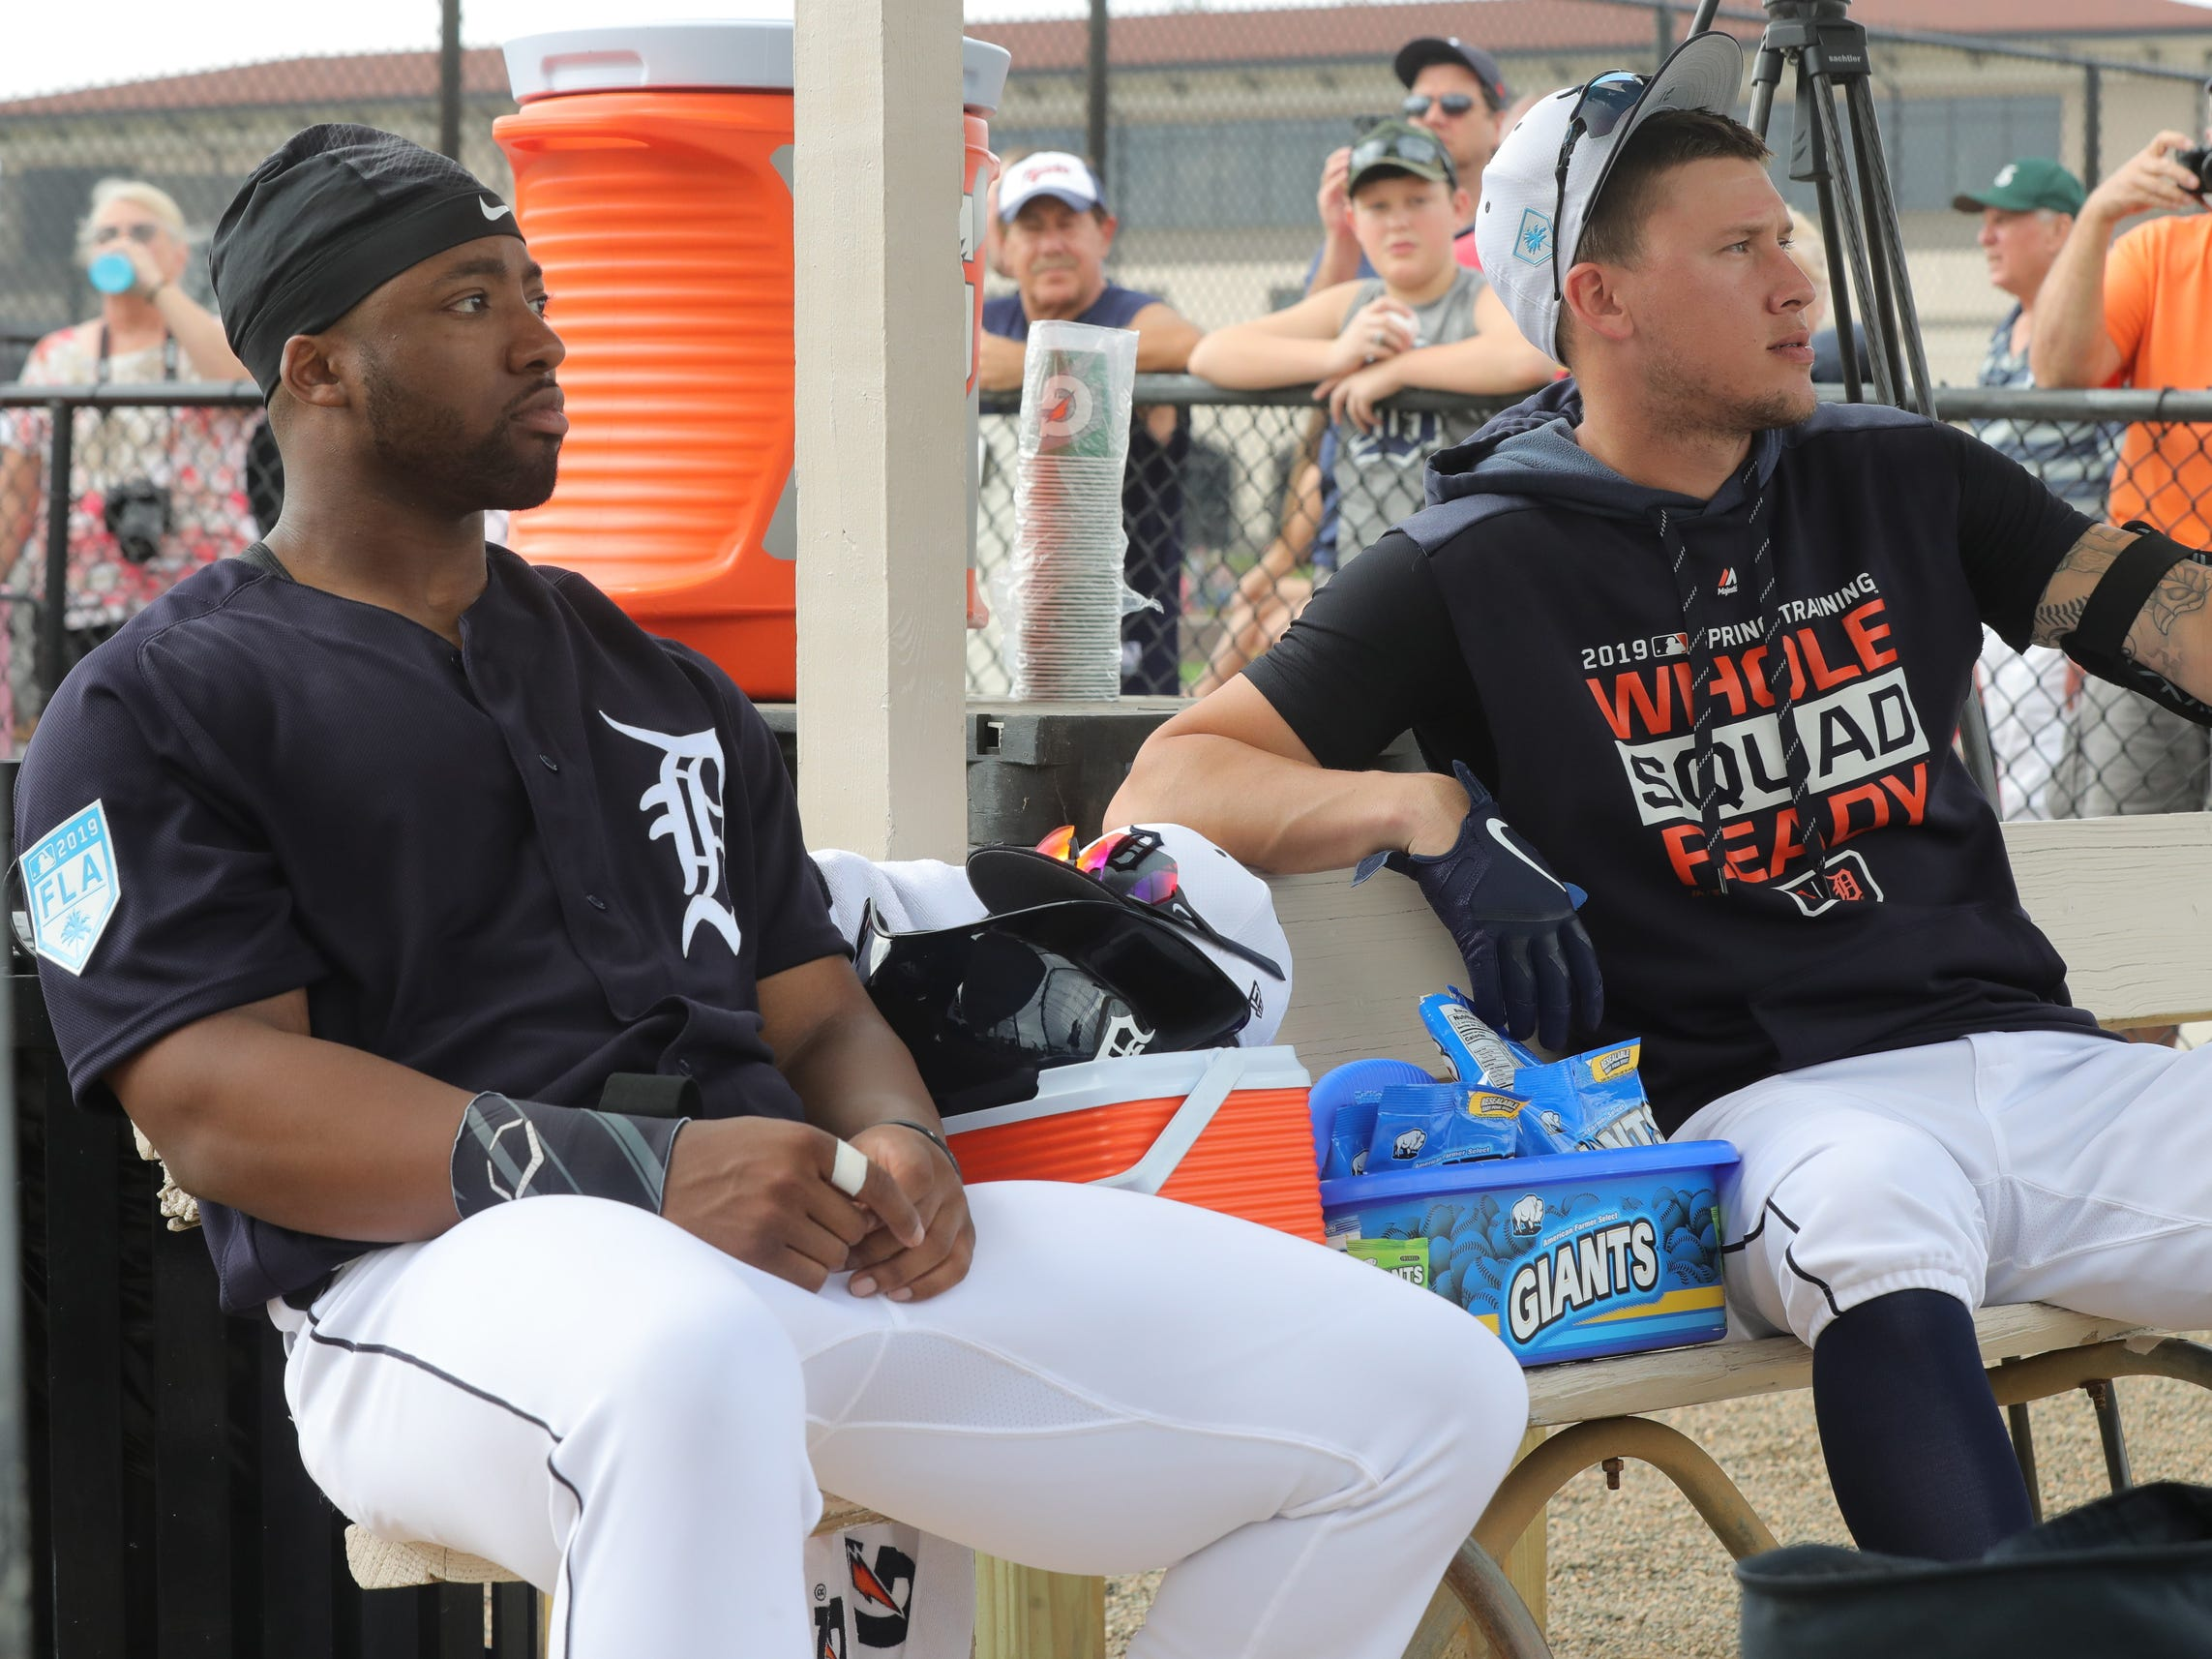 Detroit Tigers outfielders Christin Stewart, left, and JaCoby Jones in the dugout Monday, Feb. 18, 2019 at Joker Marchant Stadium in Lakeland, Fla.